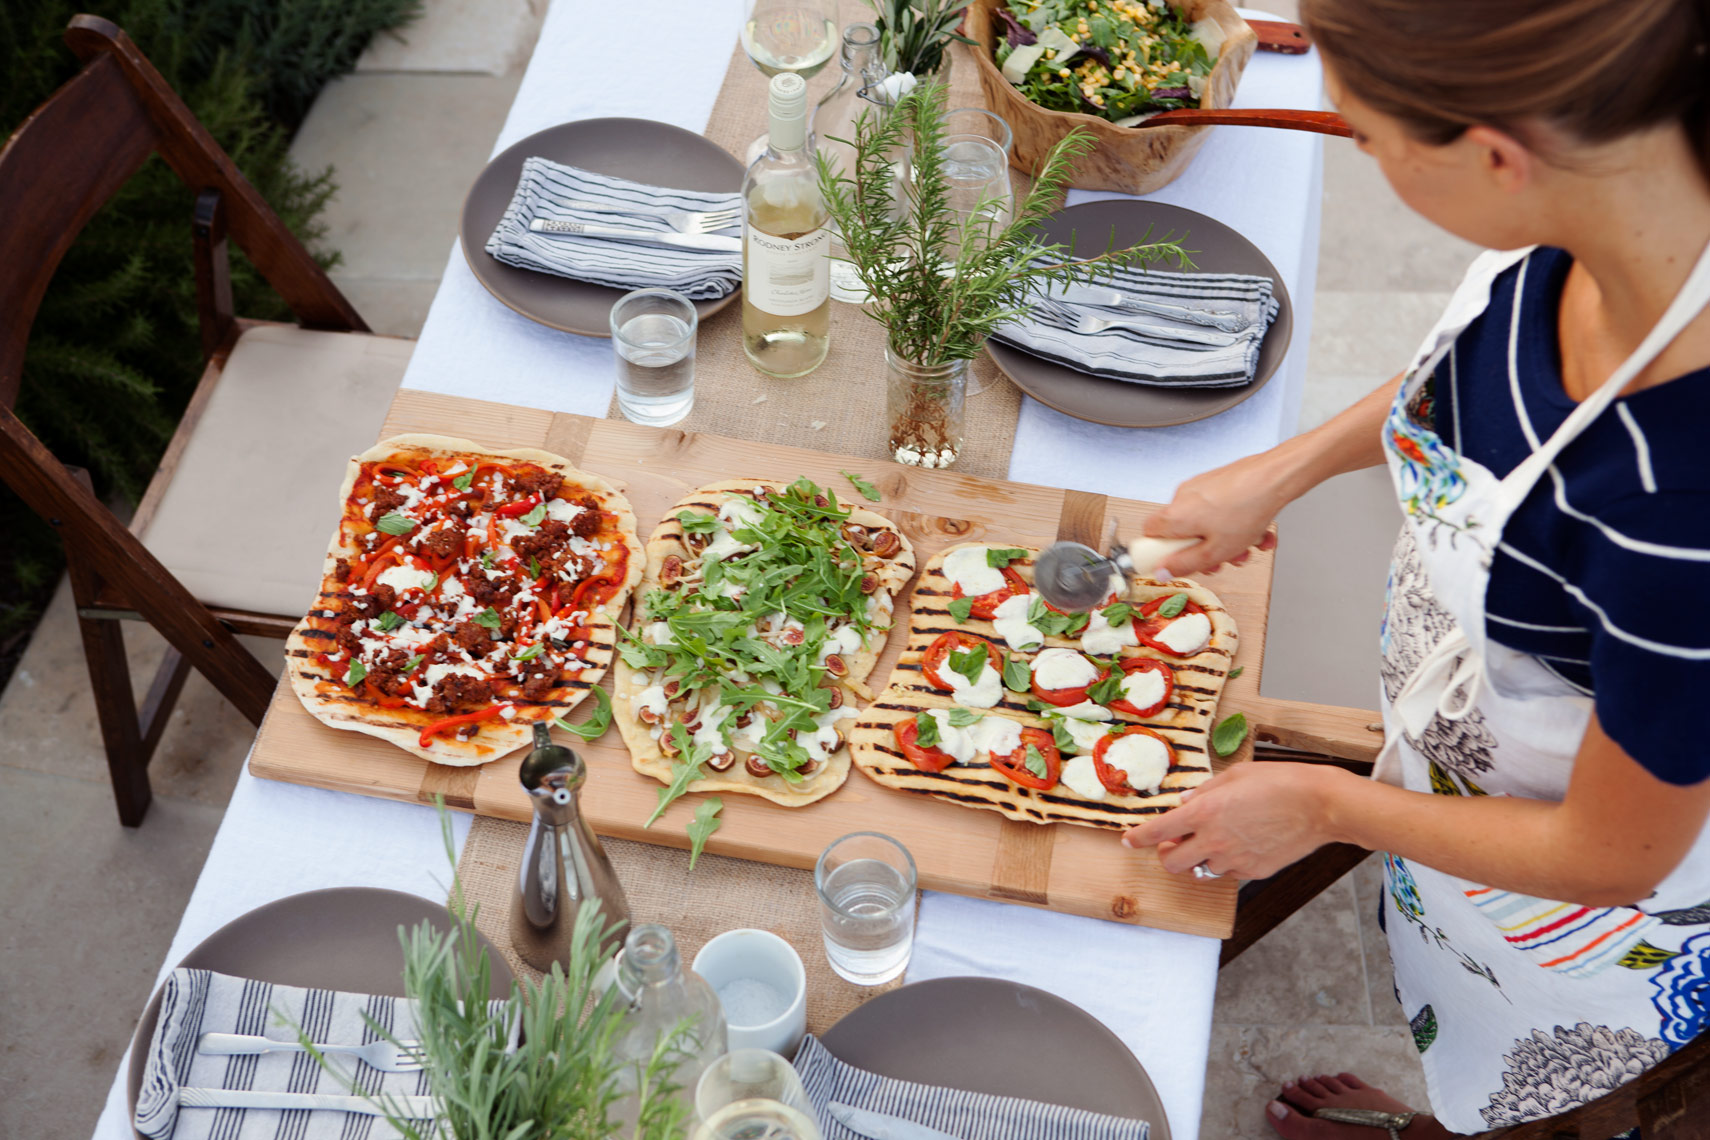 Camille Styles blog pizza grilling party entertaining outdoors